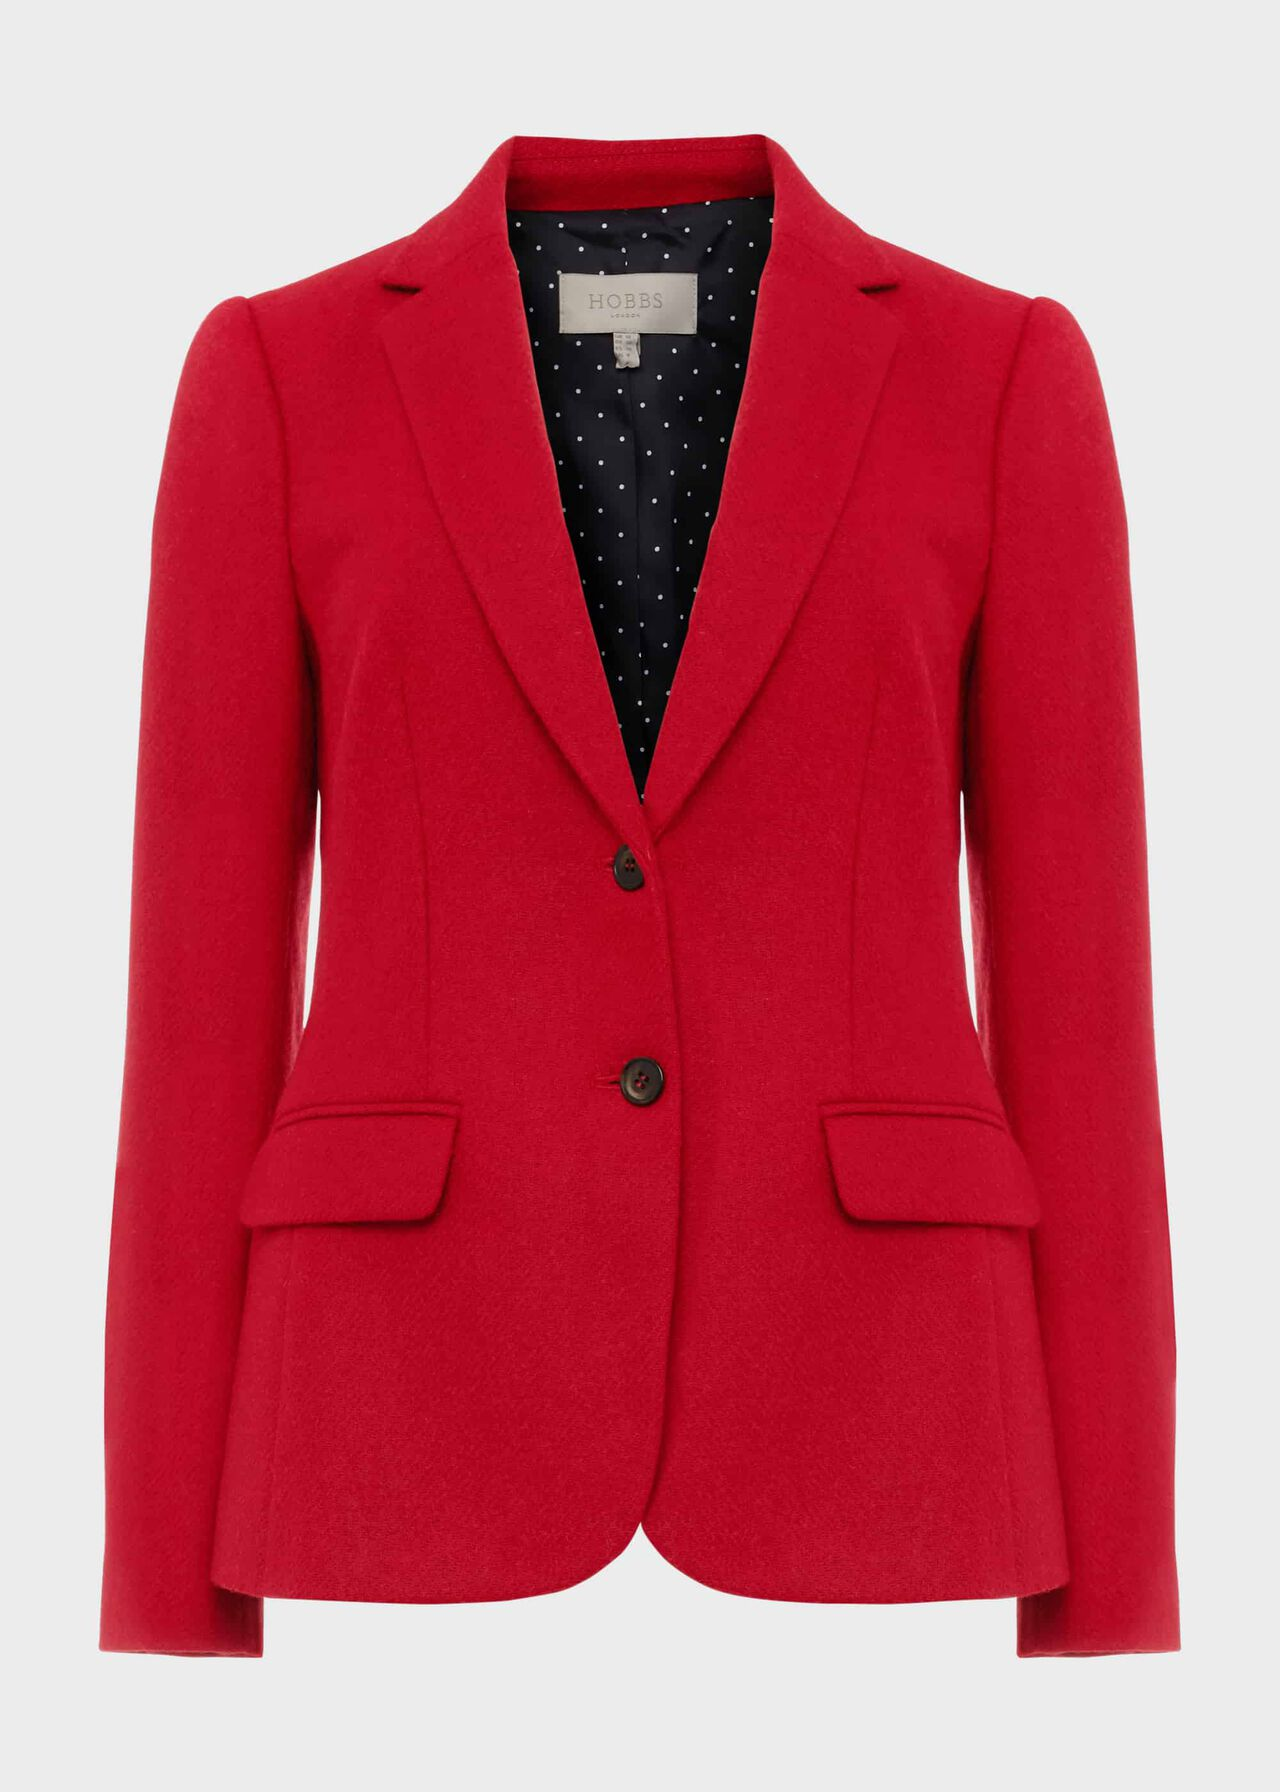 Jessica Wool Jacket Hobbs Red